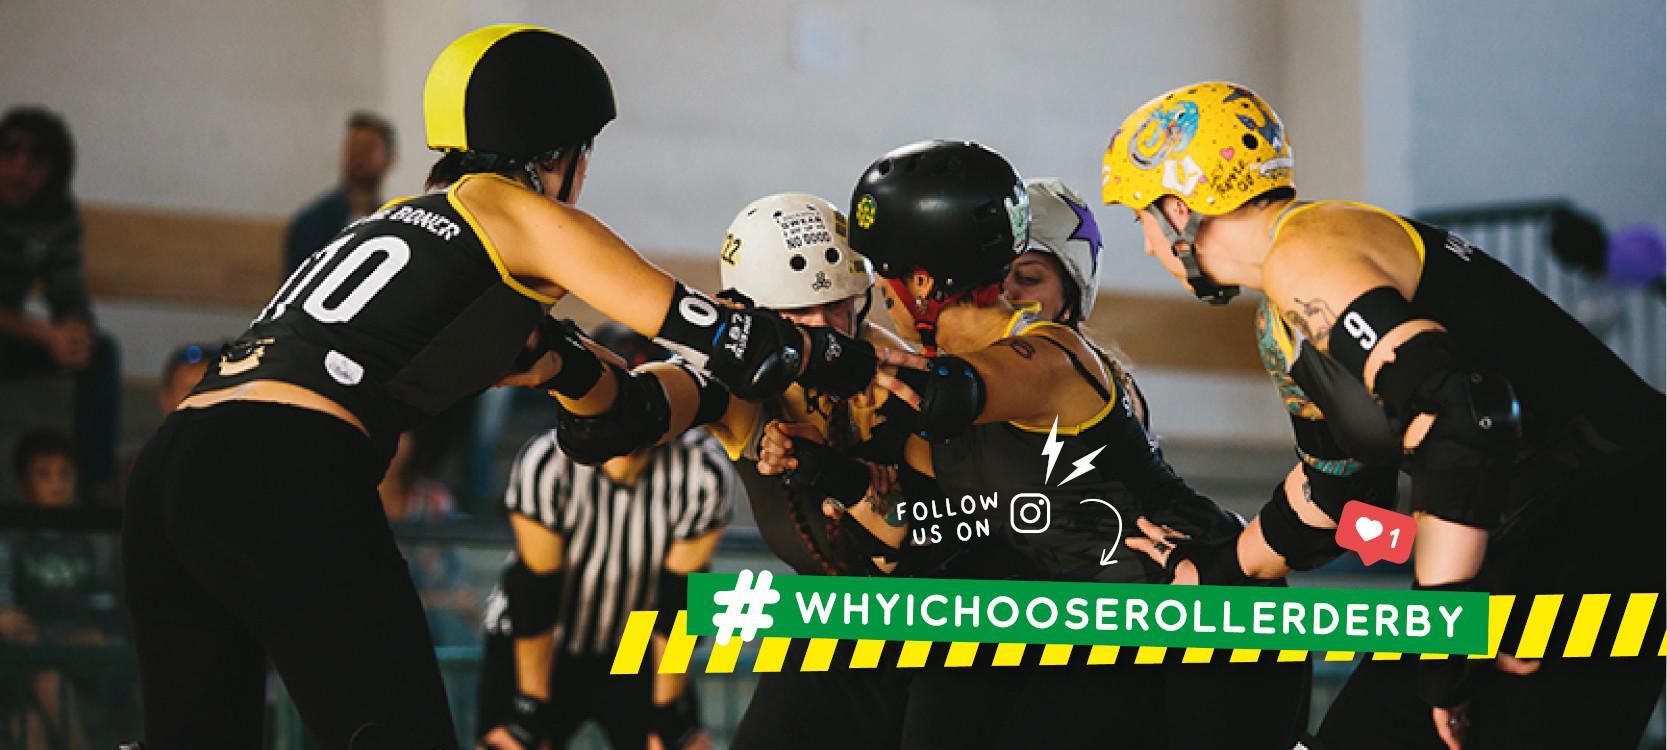 Flyer for #whyIchooserollerderby project, image of Banshees on track, overlaid with hashtag and instagram icons.